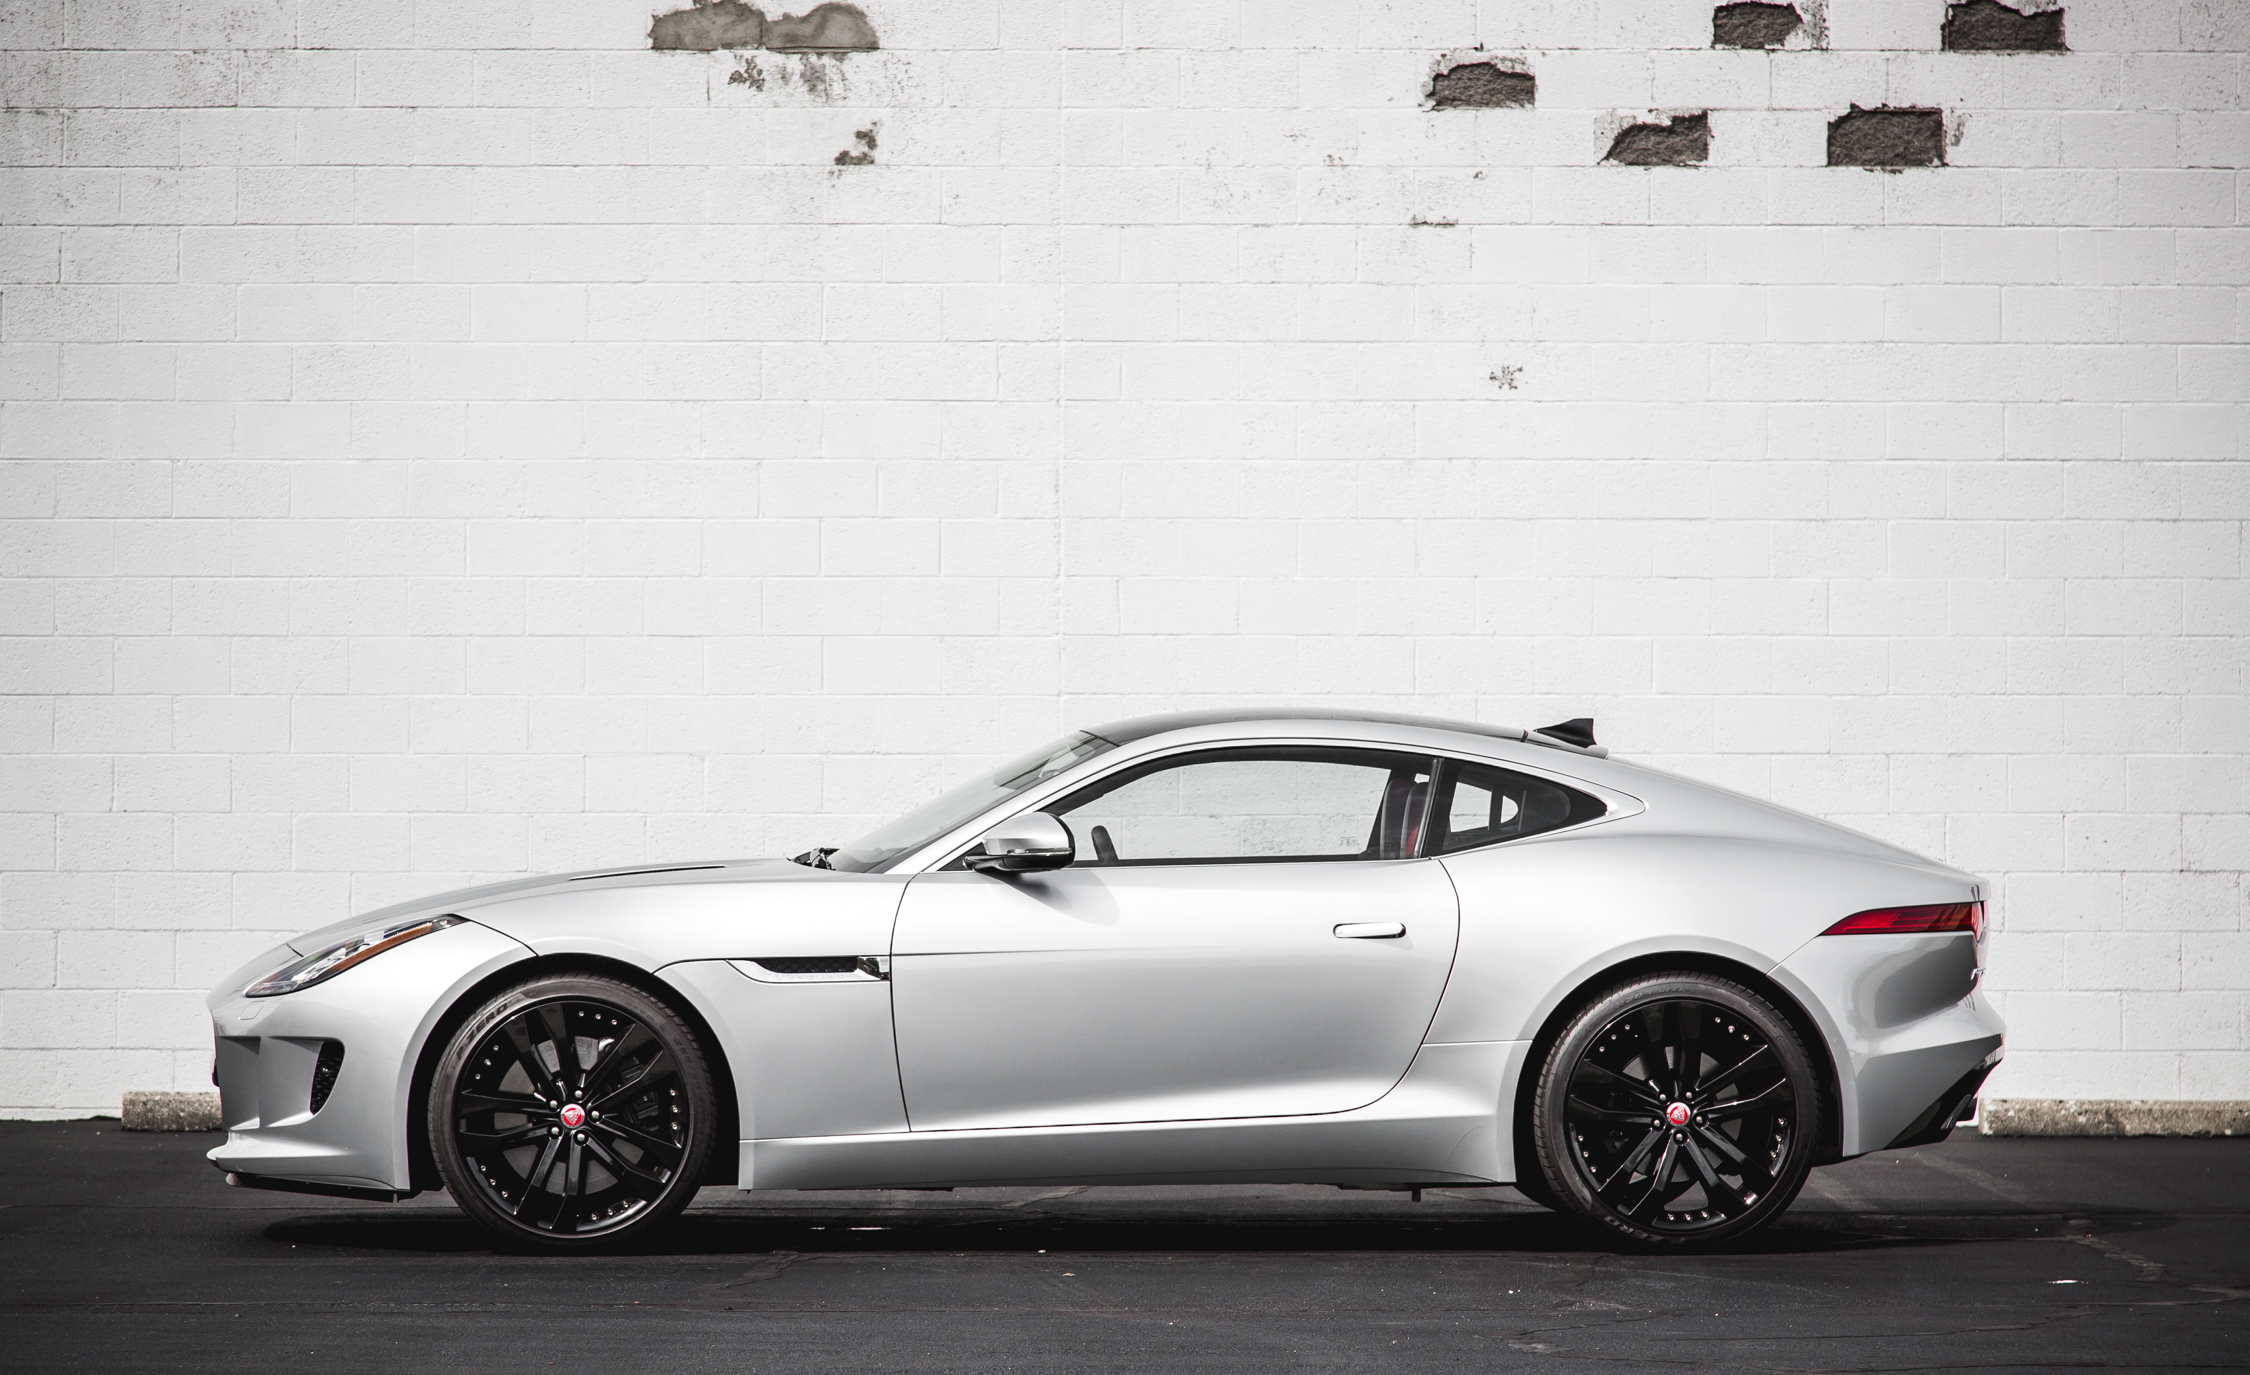 2016 Jaguar F-Type S Exterior Side